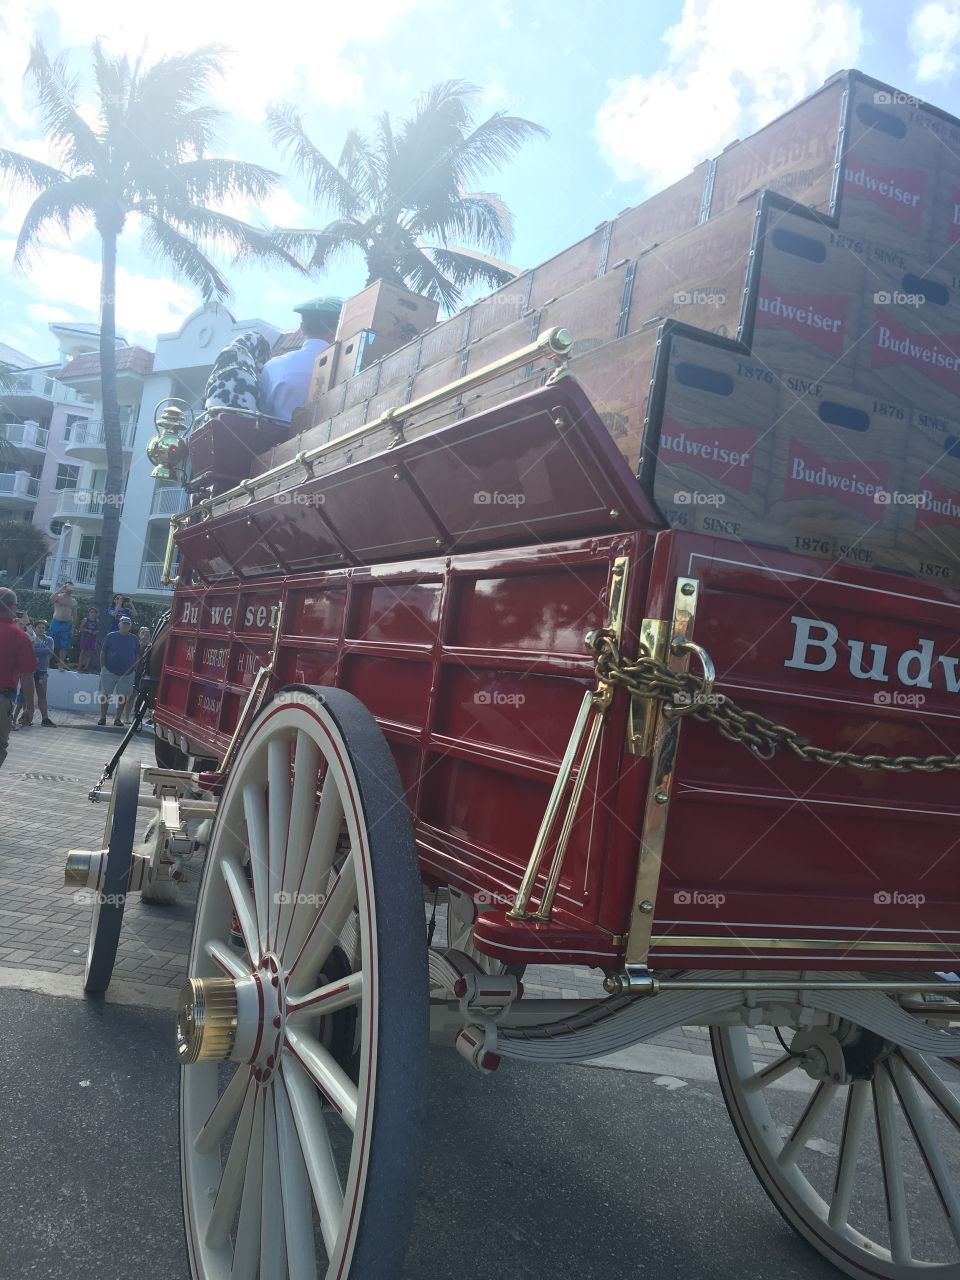 Budweiser wagon Clydesdale parade